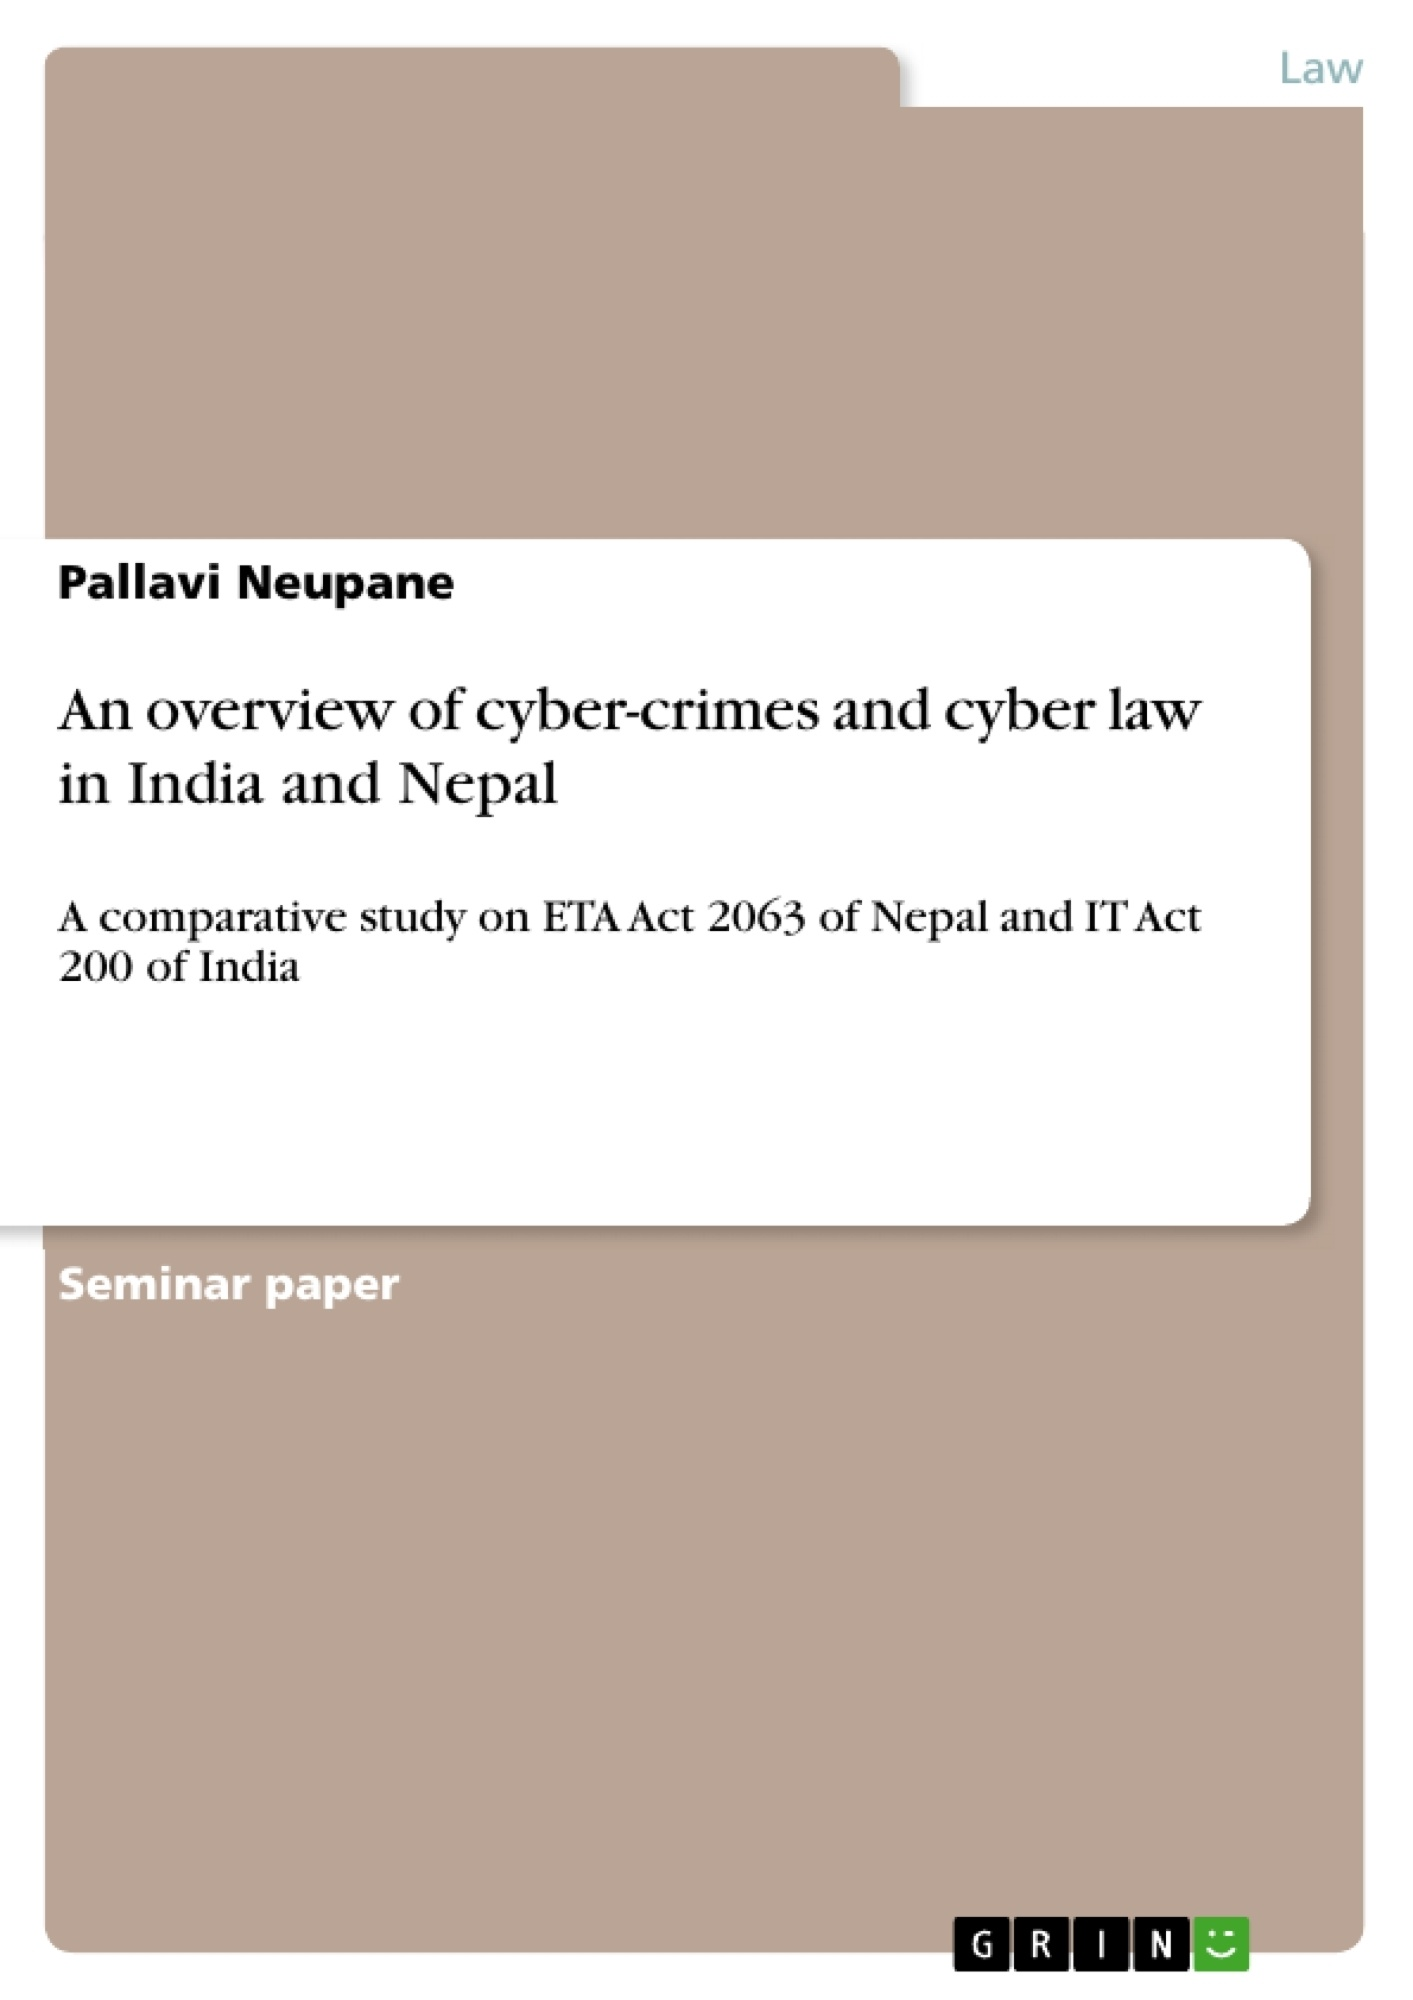 GRIN - An overview of cyber-crimes and cyber law in India and Nepal